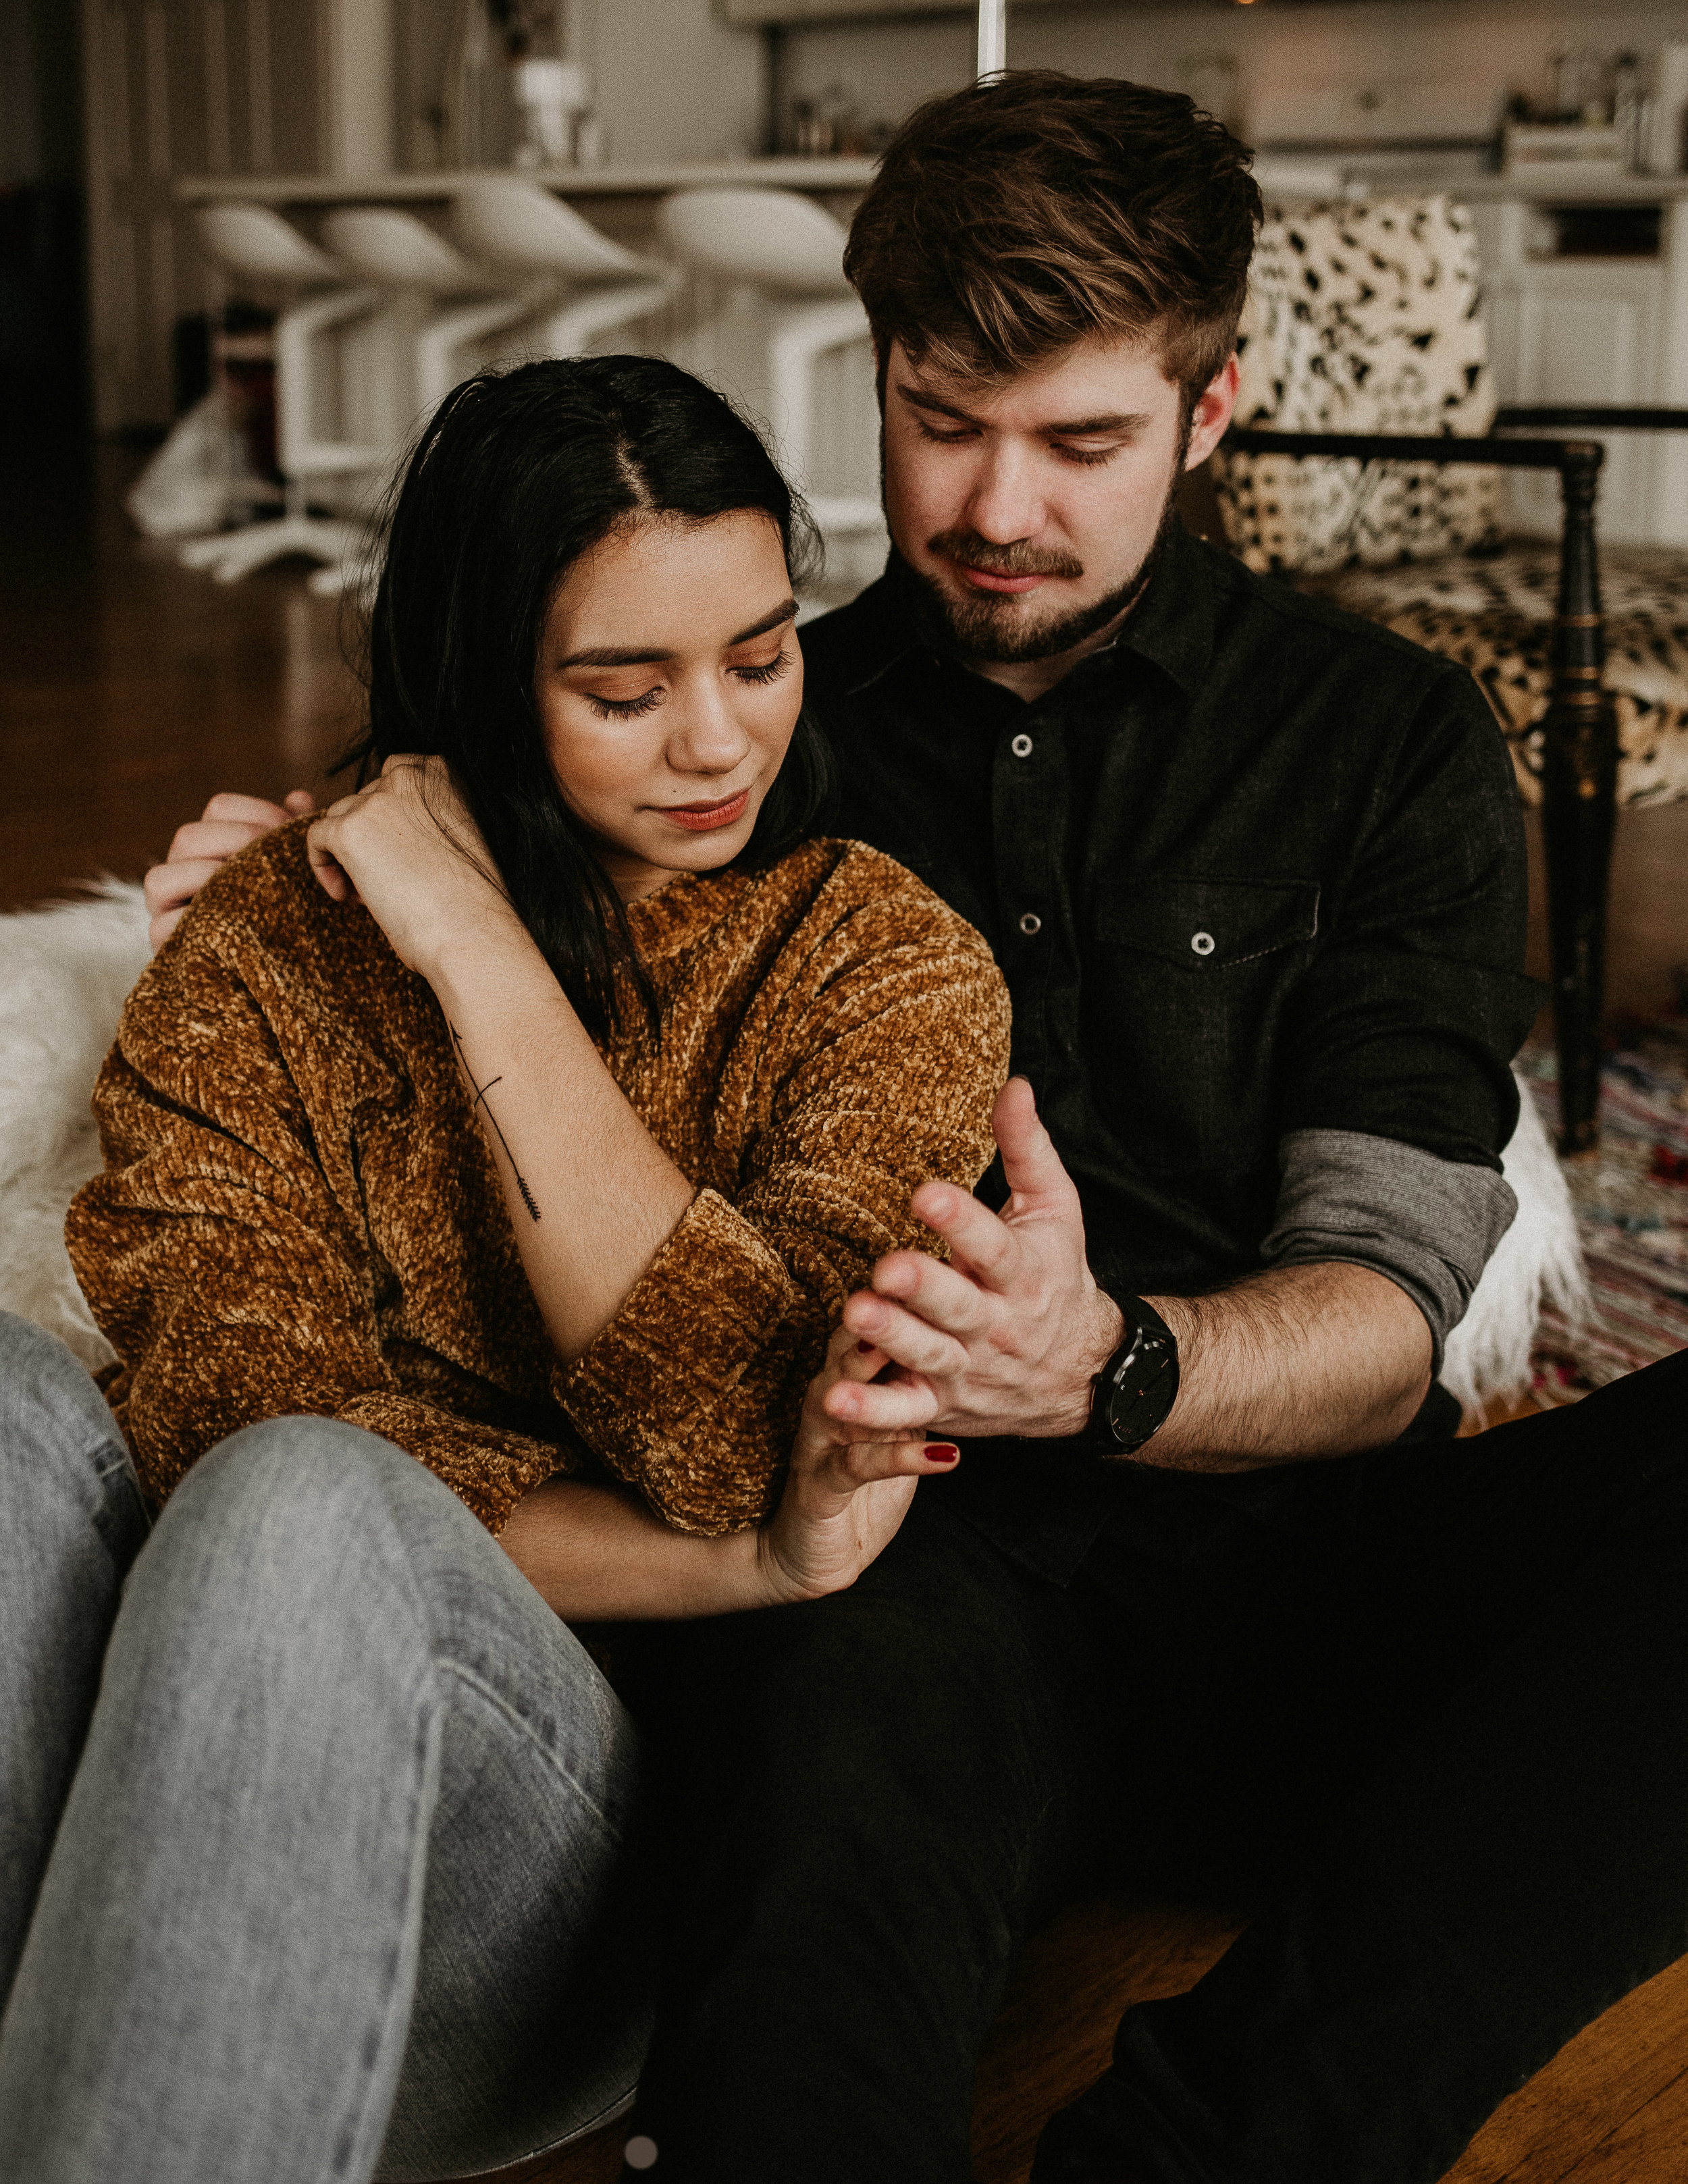 Couple In-Home Session 7.jpg